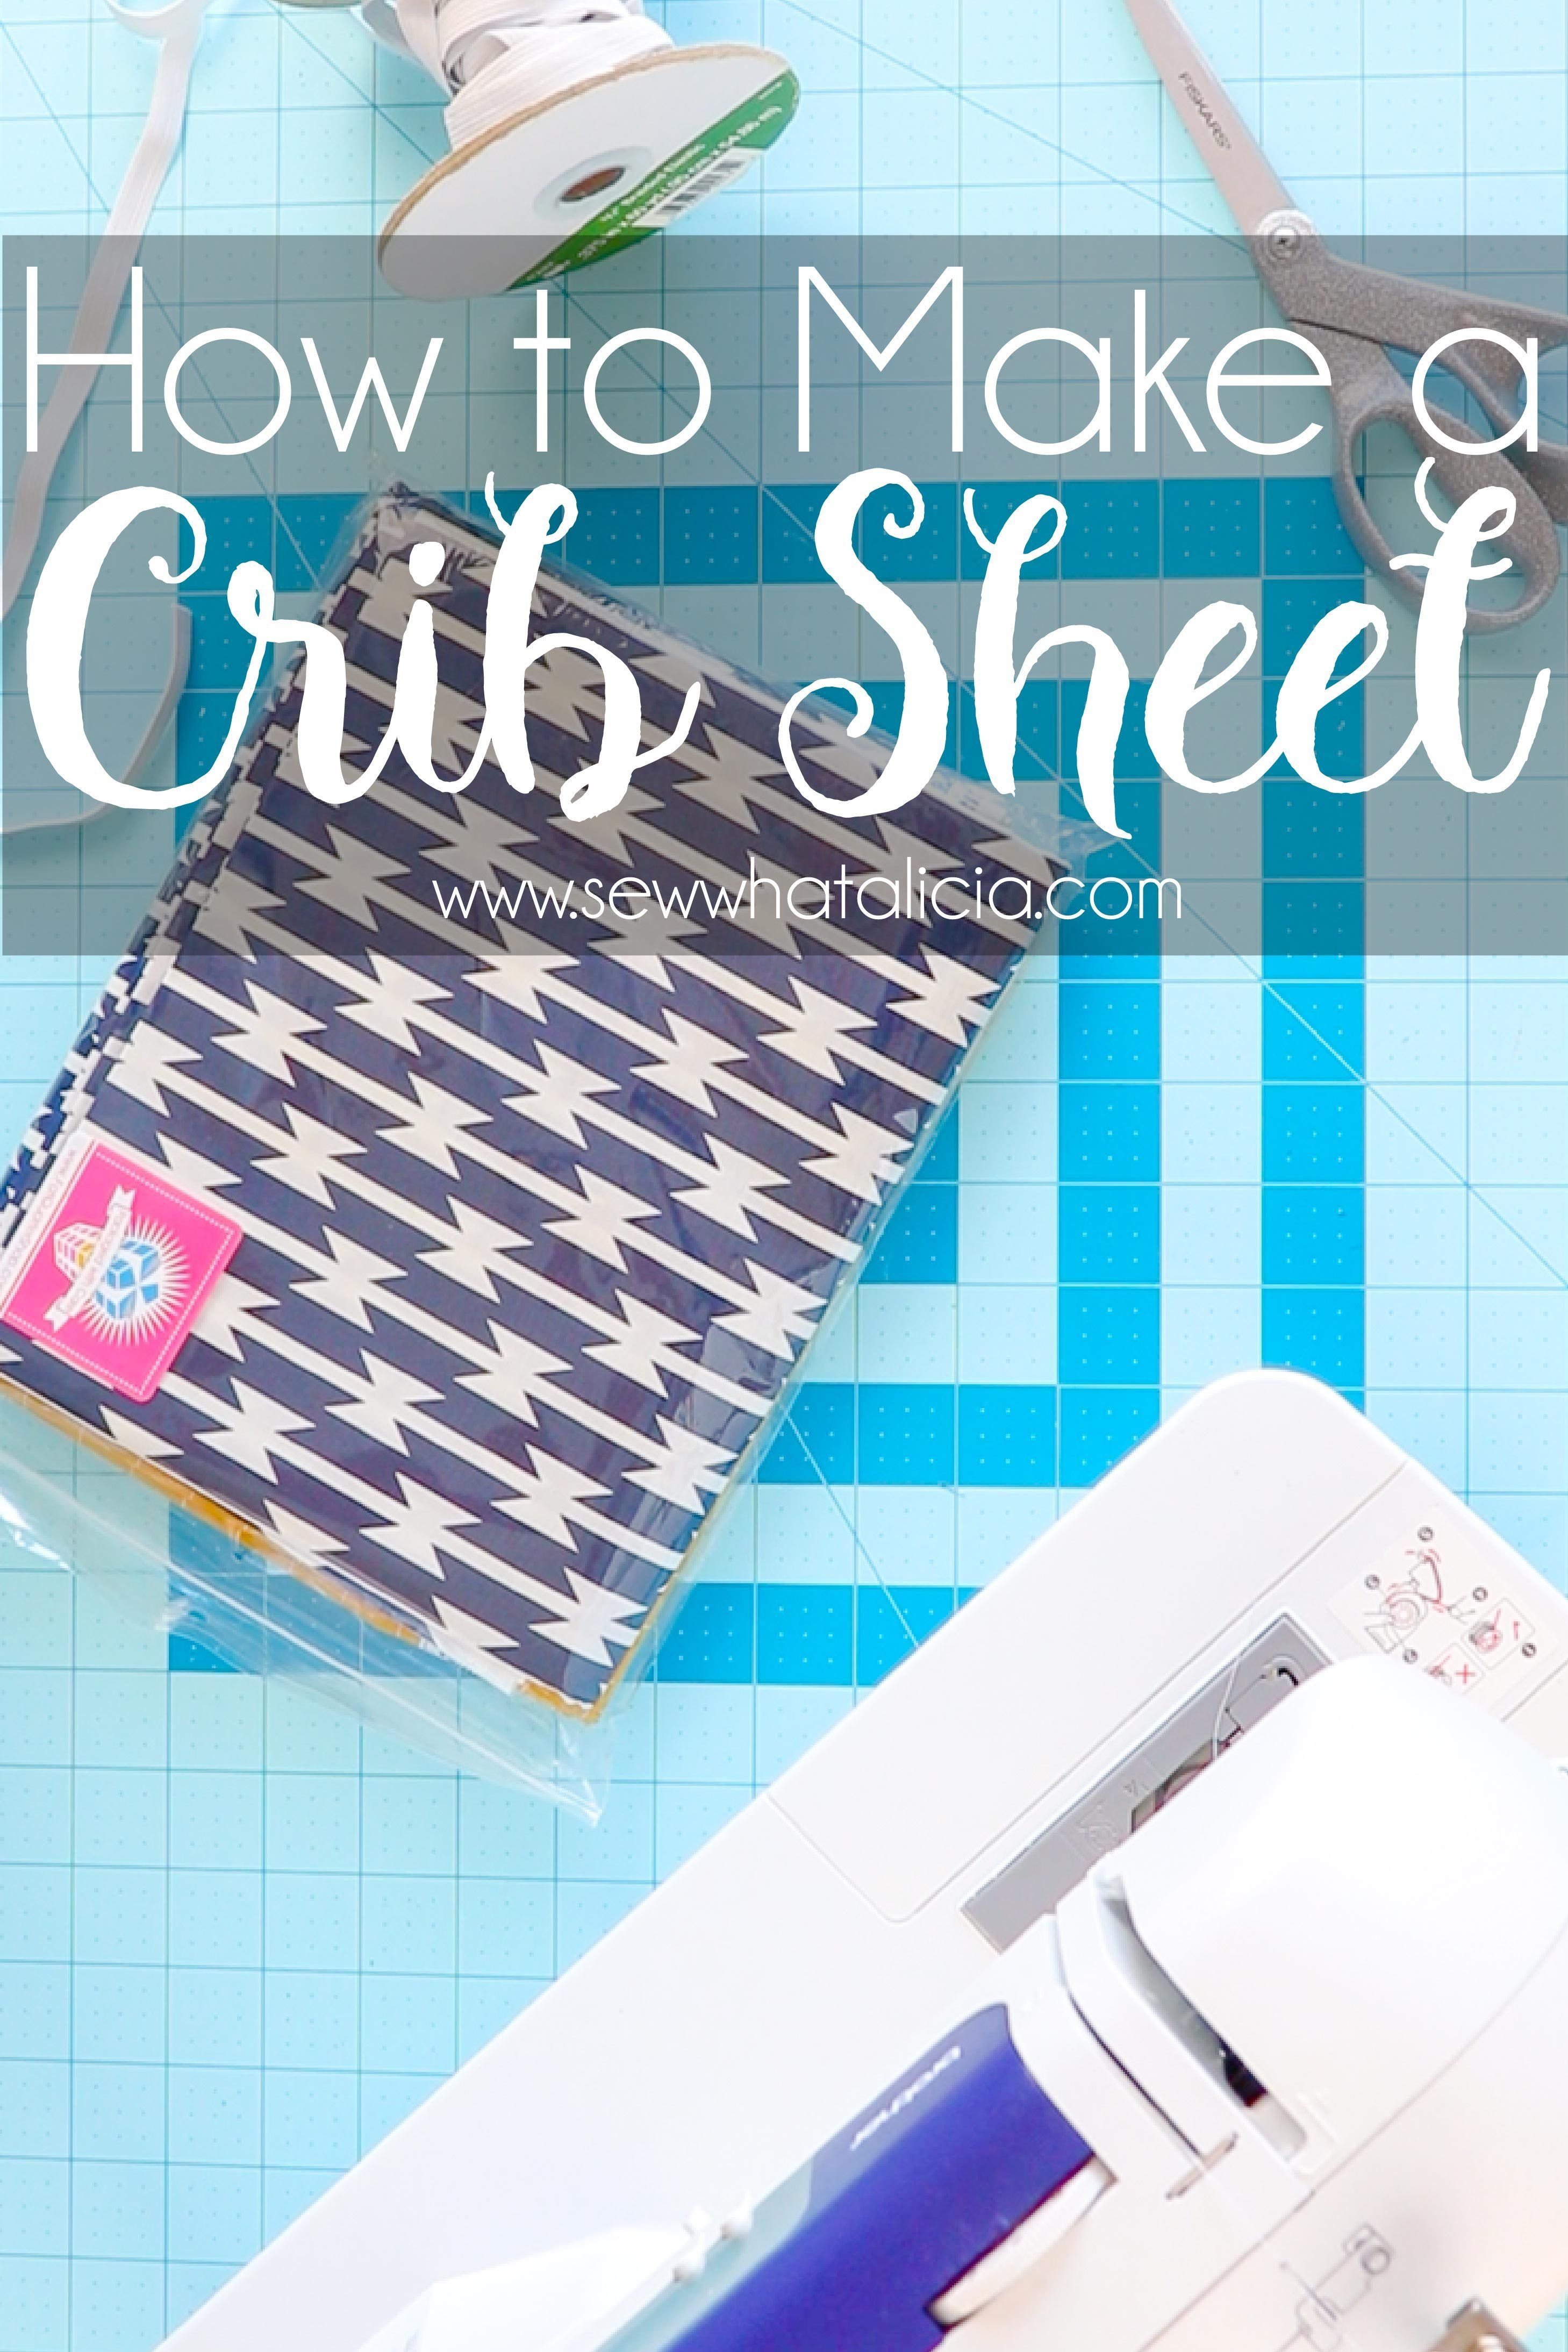 How To Make A Crib Sheet Beginner Sewing Projects Easy Sewing